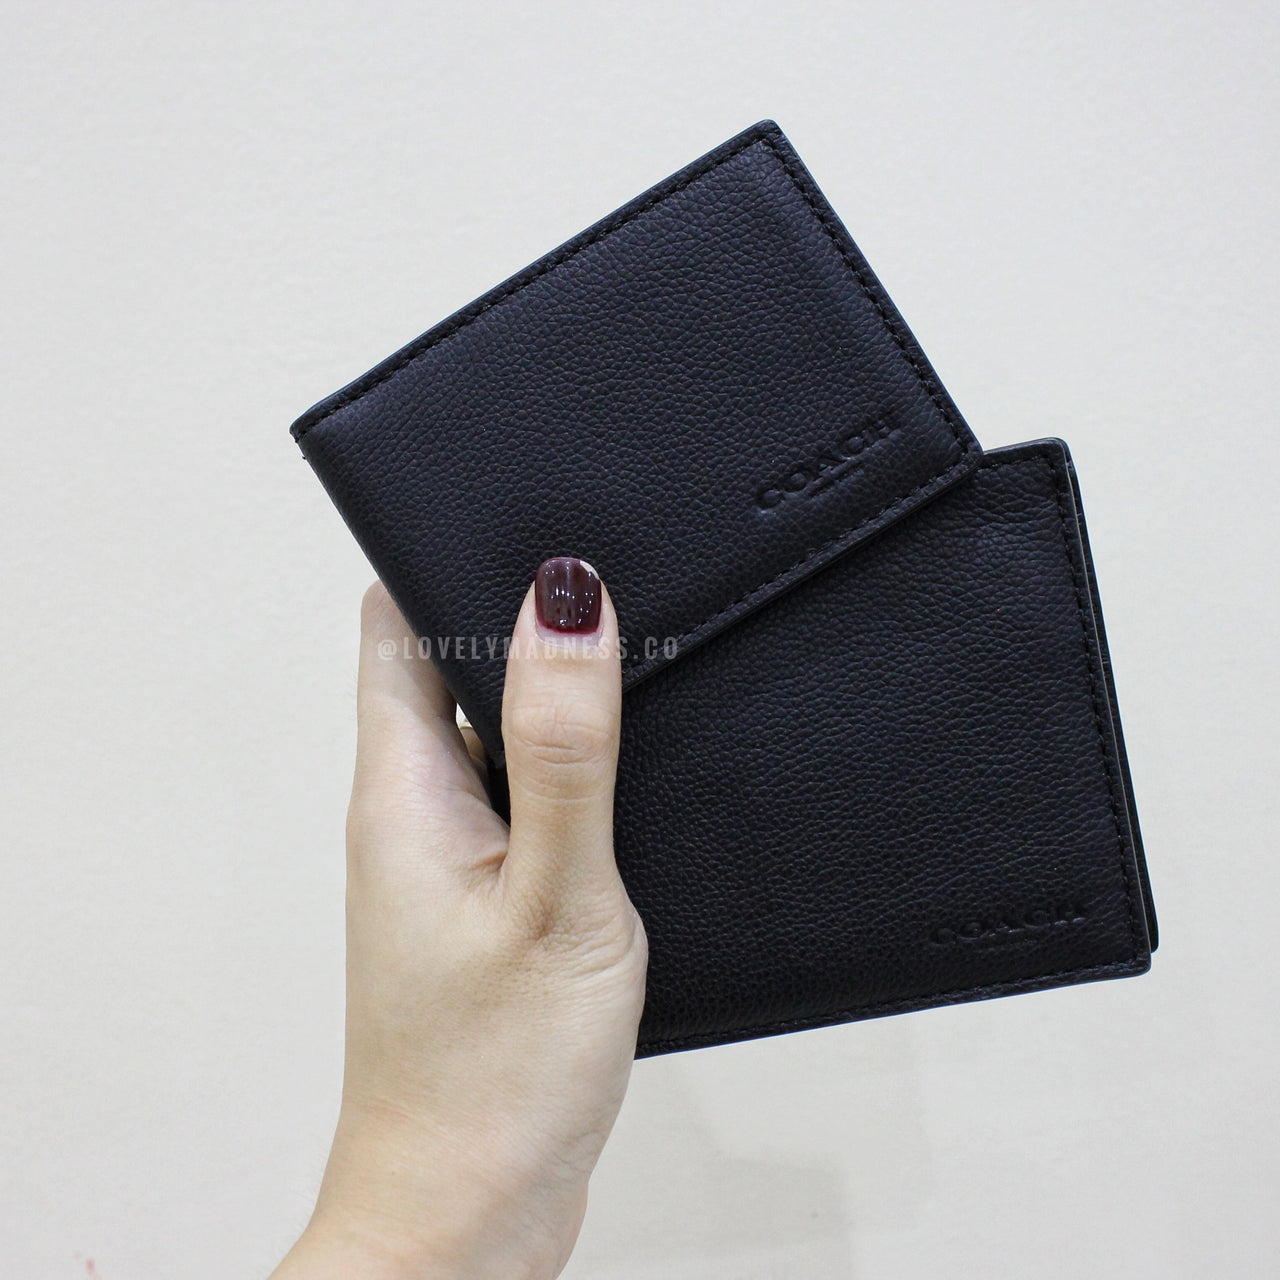 COACH COMPACT ID WALLET IN SPORT CALF LEATHER - LovelyMadness Clothing Malaysia